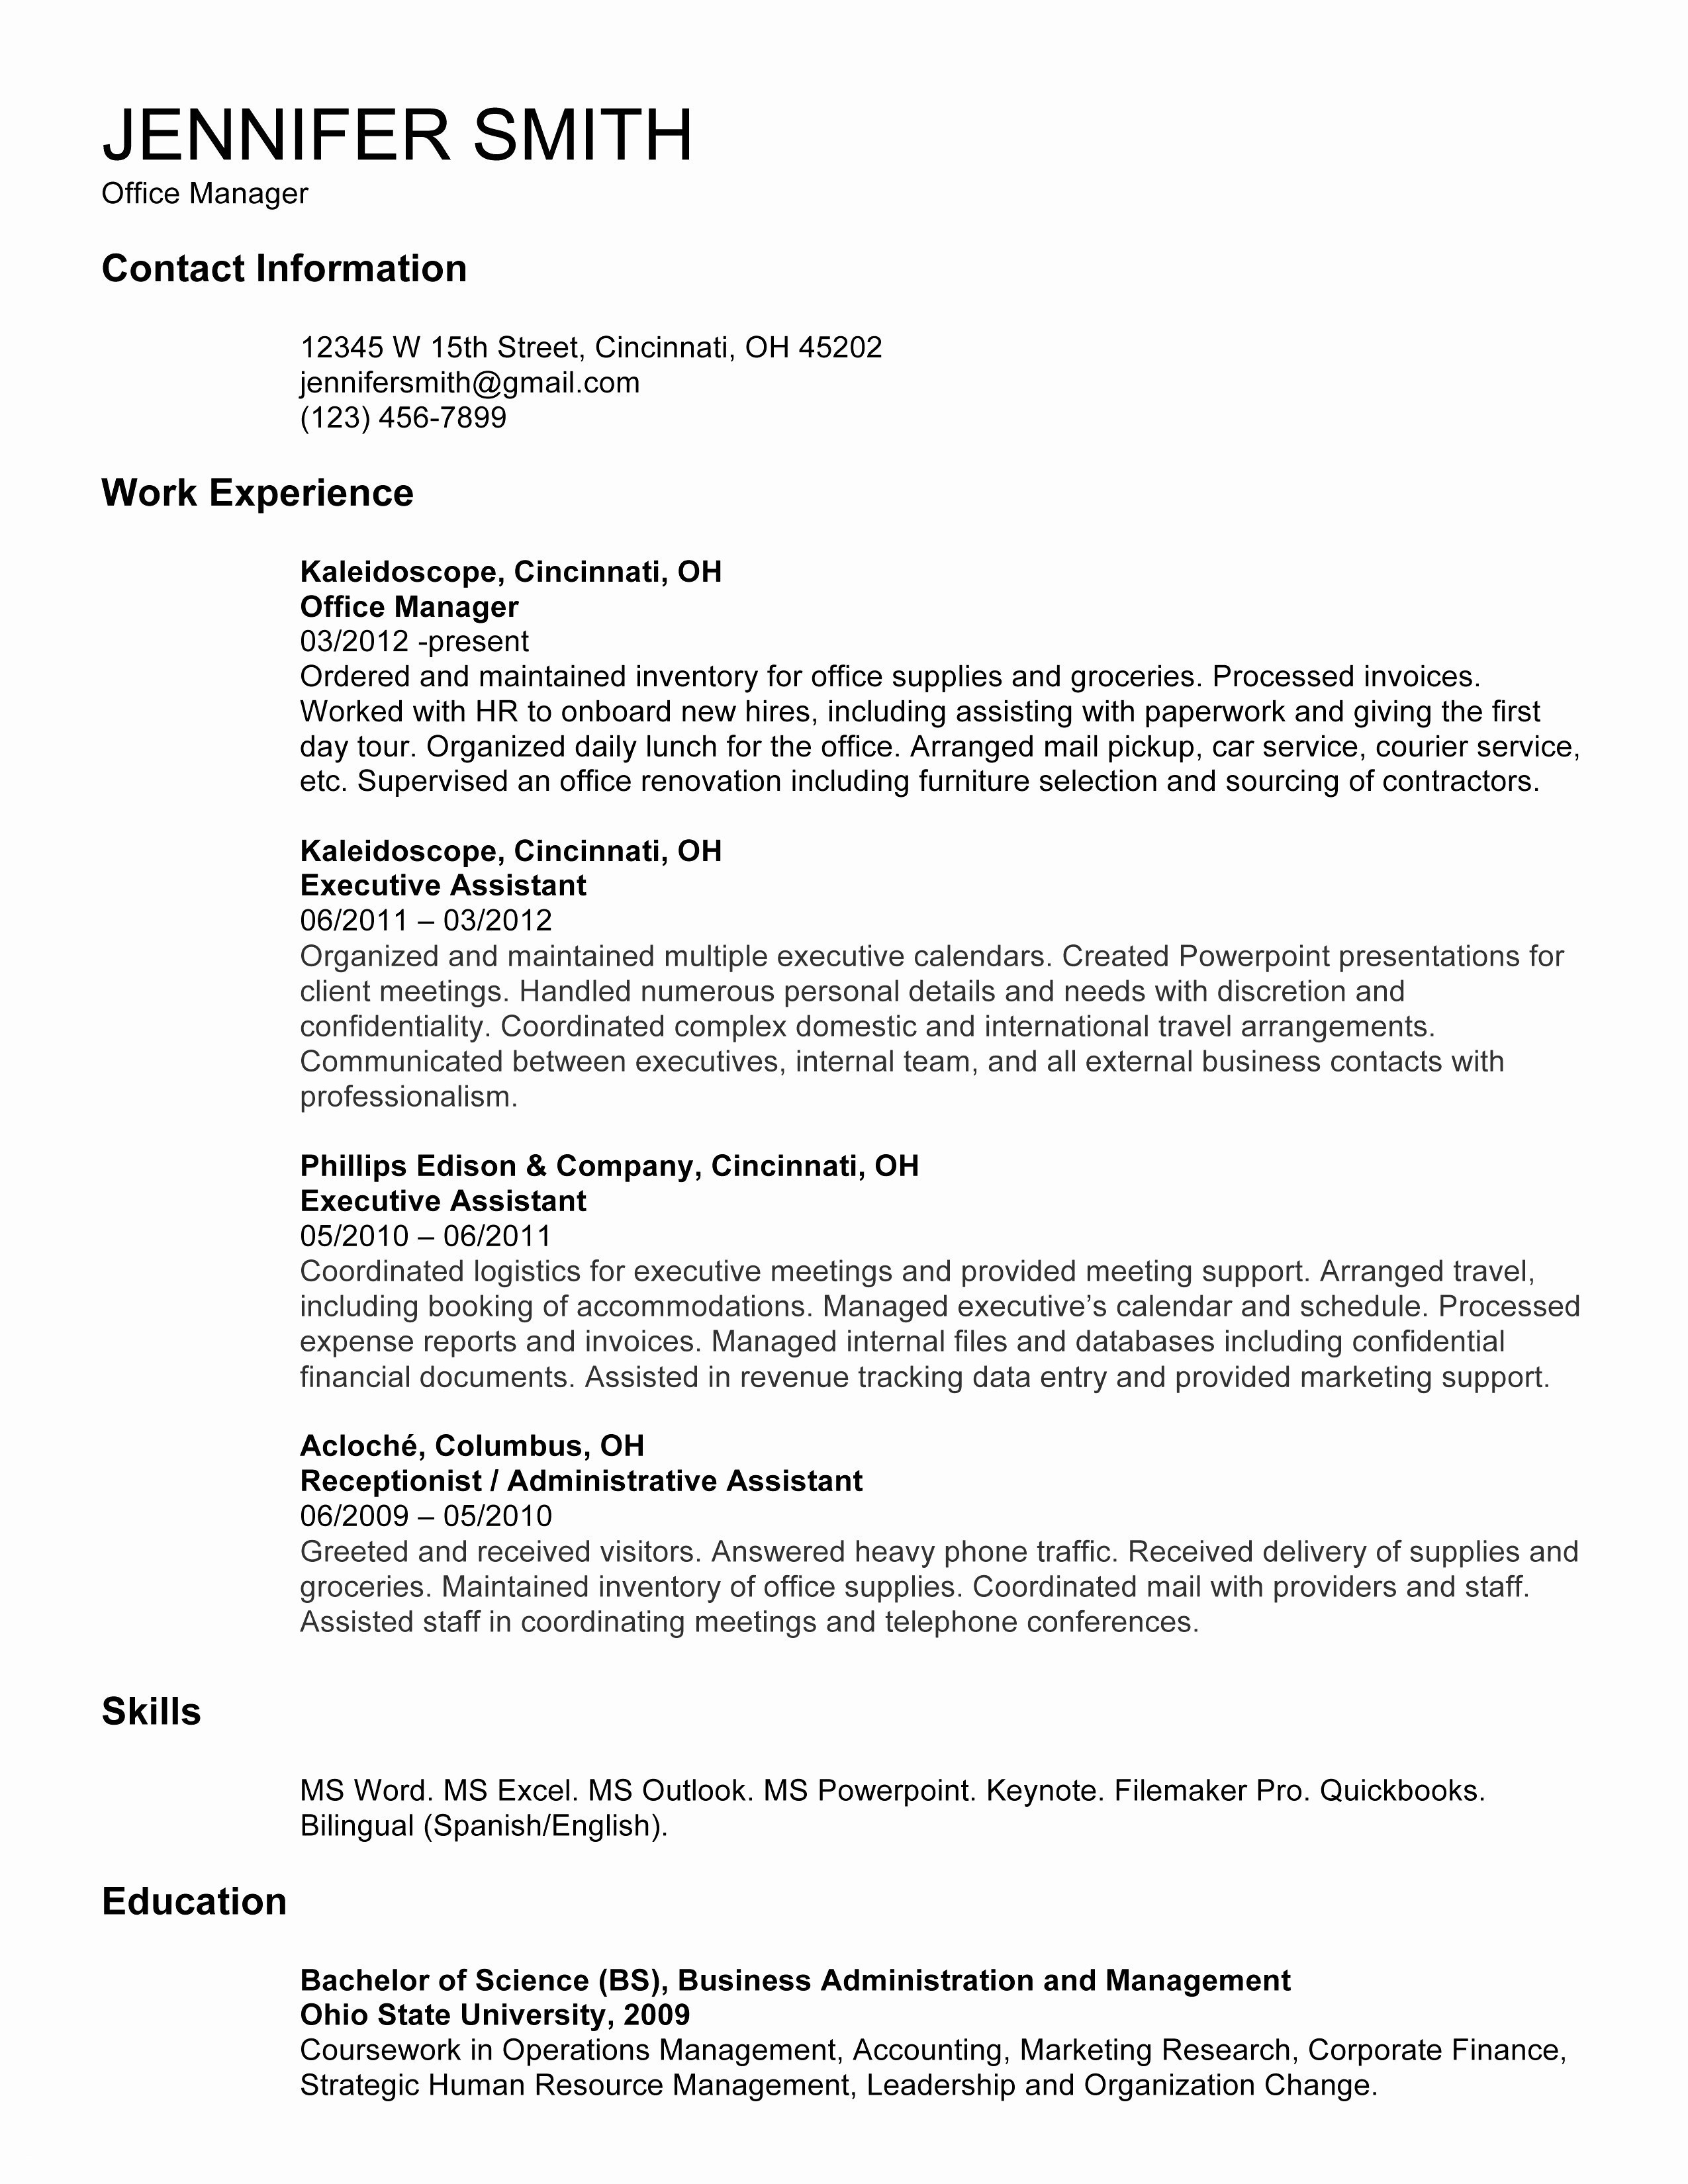 receptionist description for resume example-How To Make A Resume For A Receptionist Job Valid Fresh Reception Resume Luxury American Sample New Student 0d Where 12-d